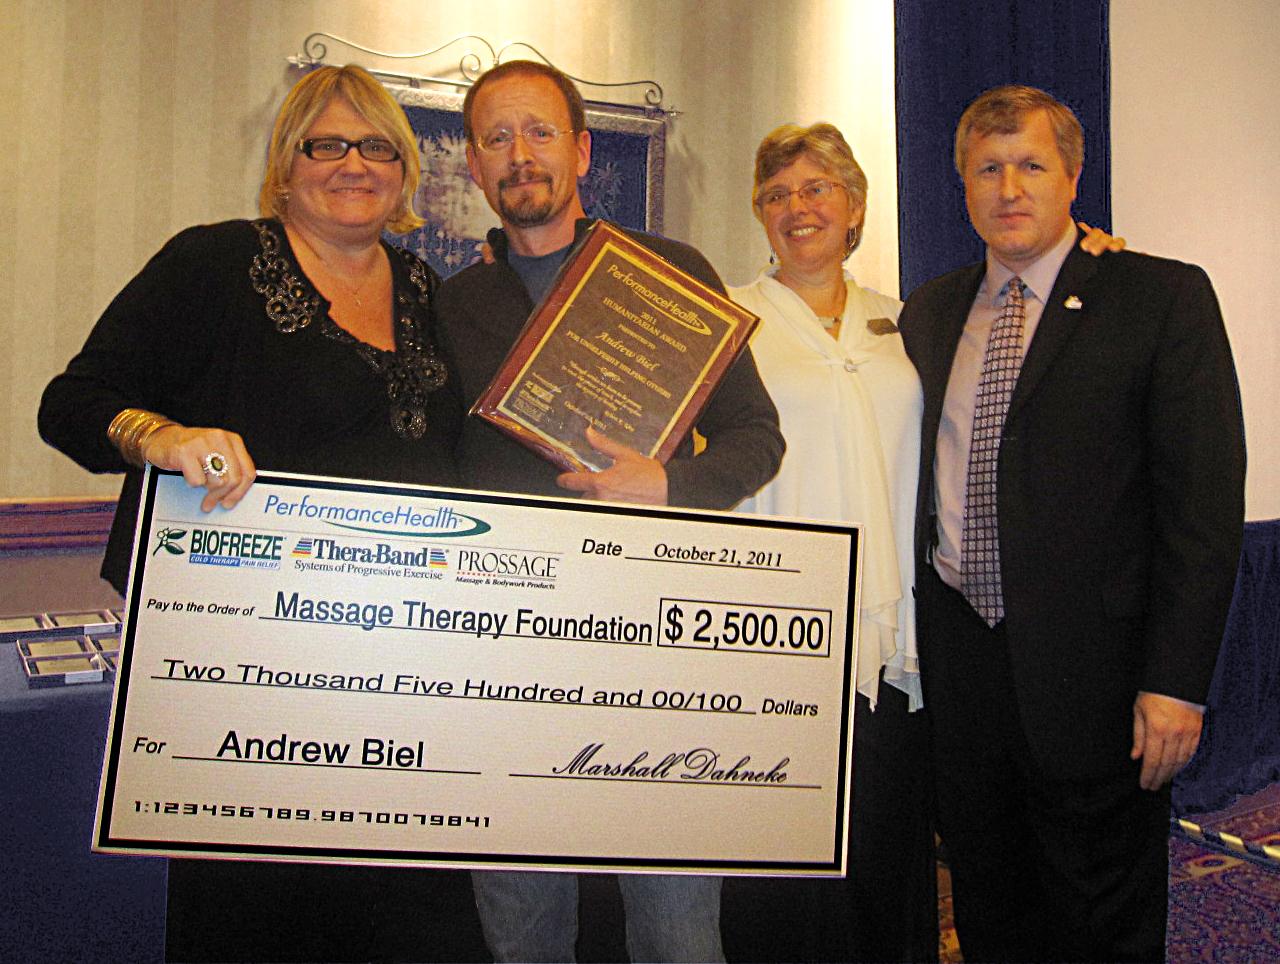 Andrew Biel Receives the Massage Therapy Foundation/Performance Health 2011 Humanitarian Award, MASSAGE Magazine